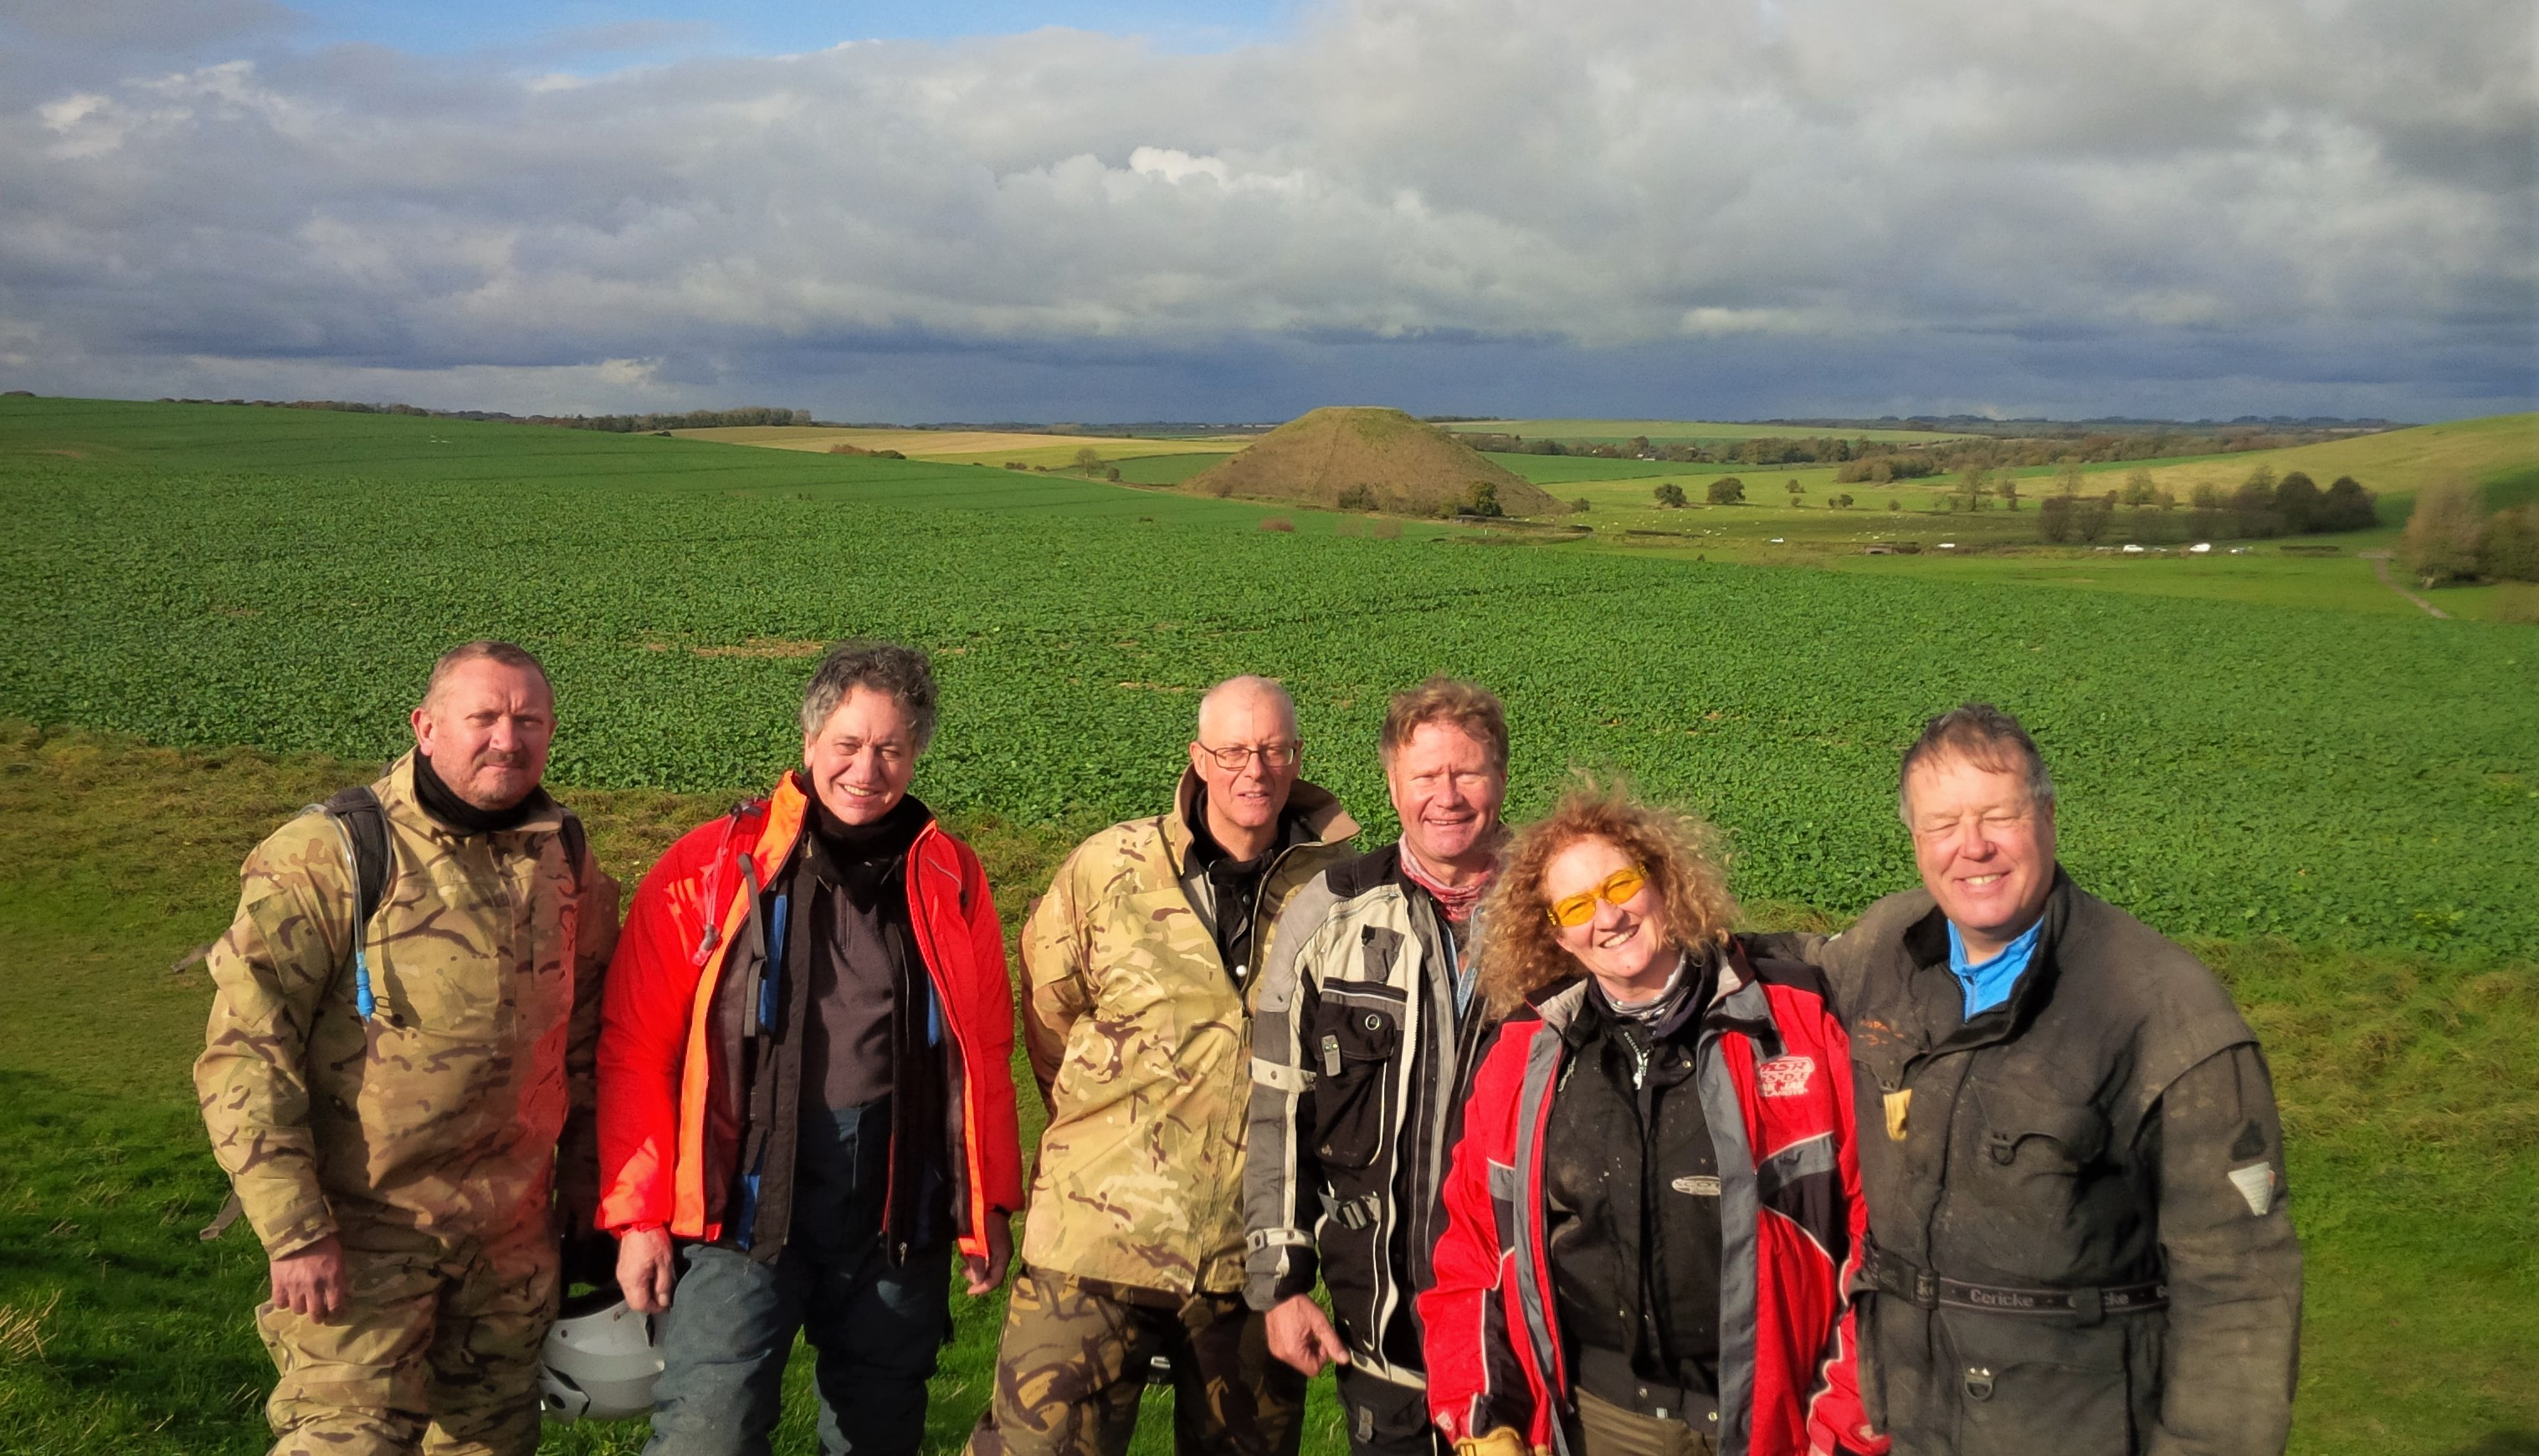 Silbury Hill - John Wedeman, Andrew Byatt, Keith Johnston, Keith Dobson, Becky Burbidge, Steve Burbidge